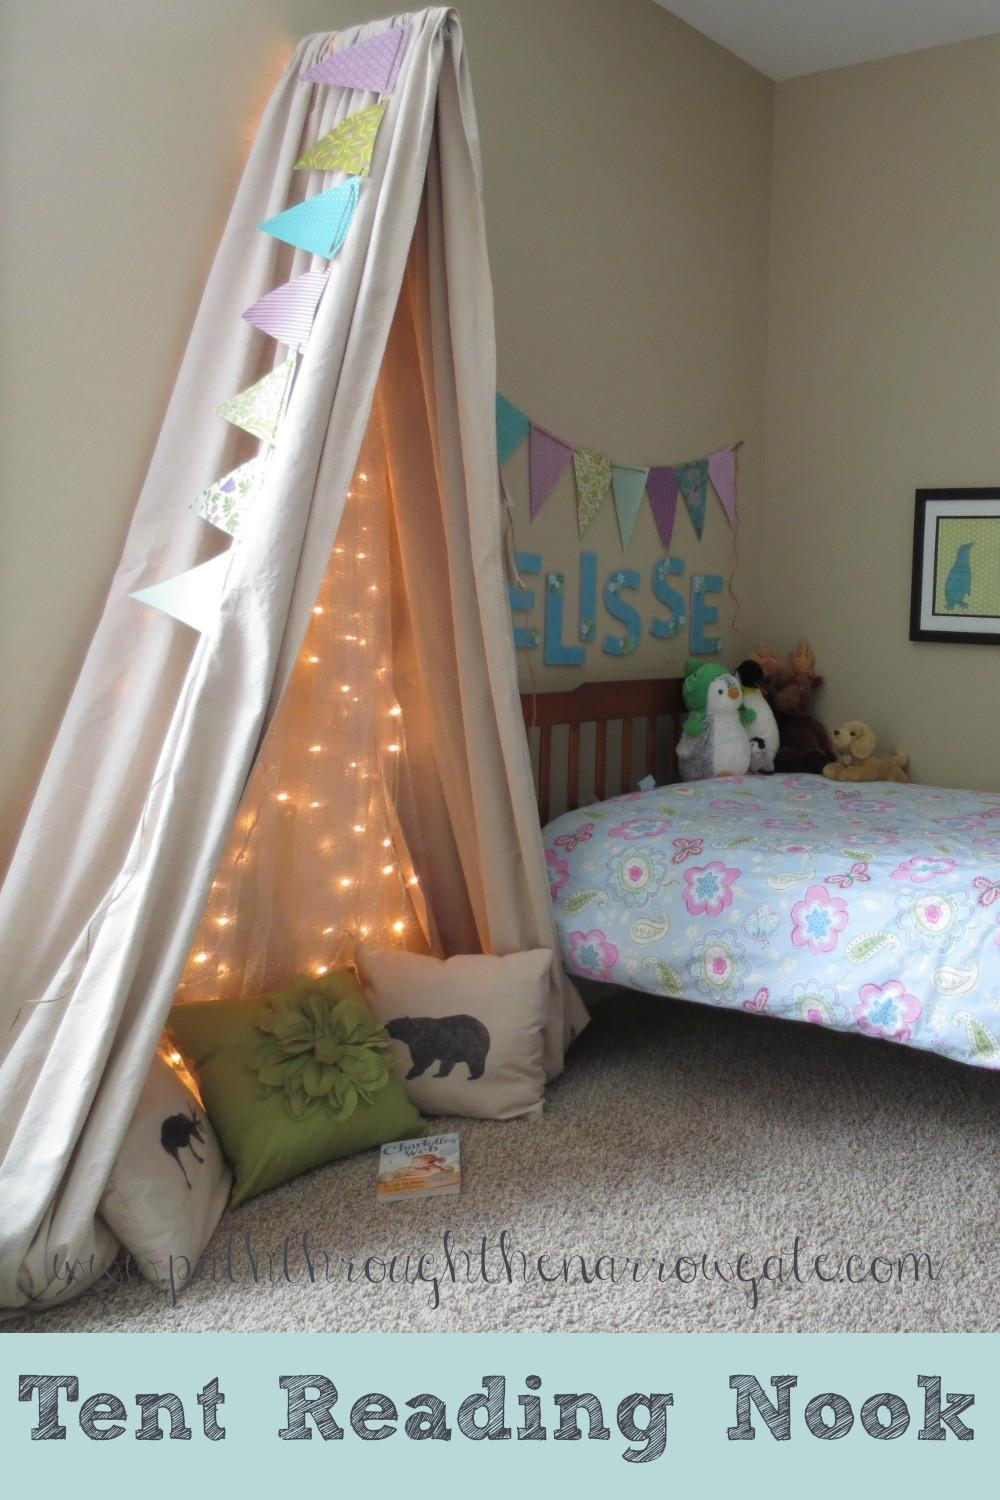 Tent Reading Nook Small Space